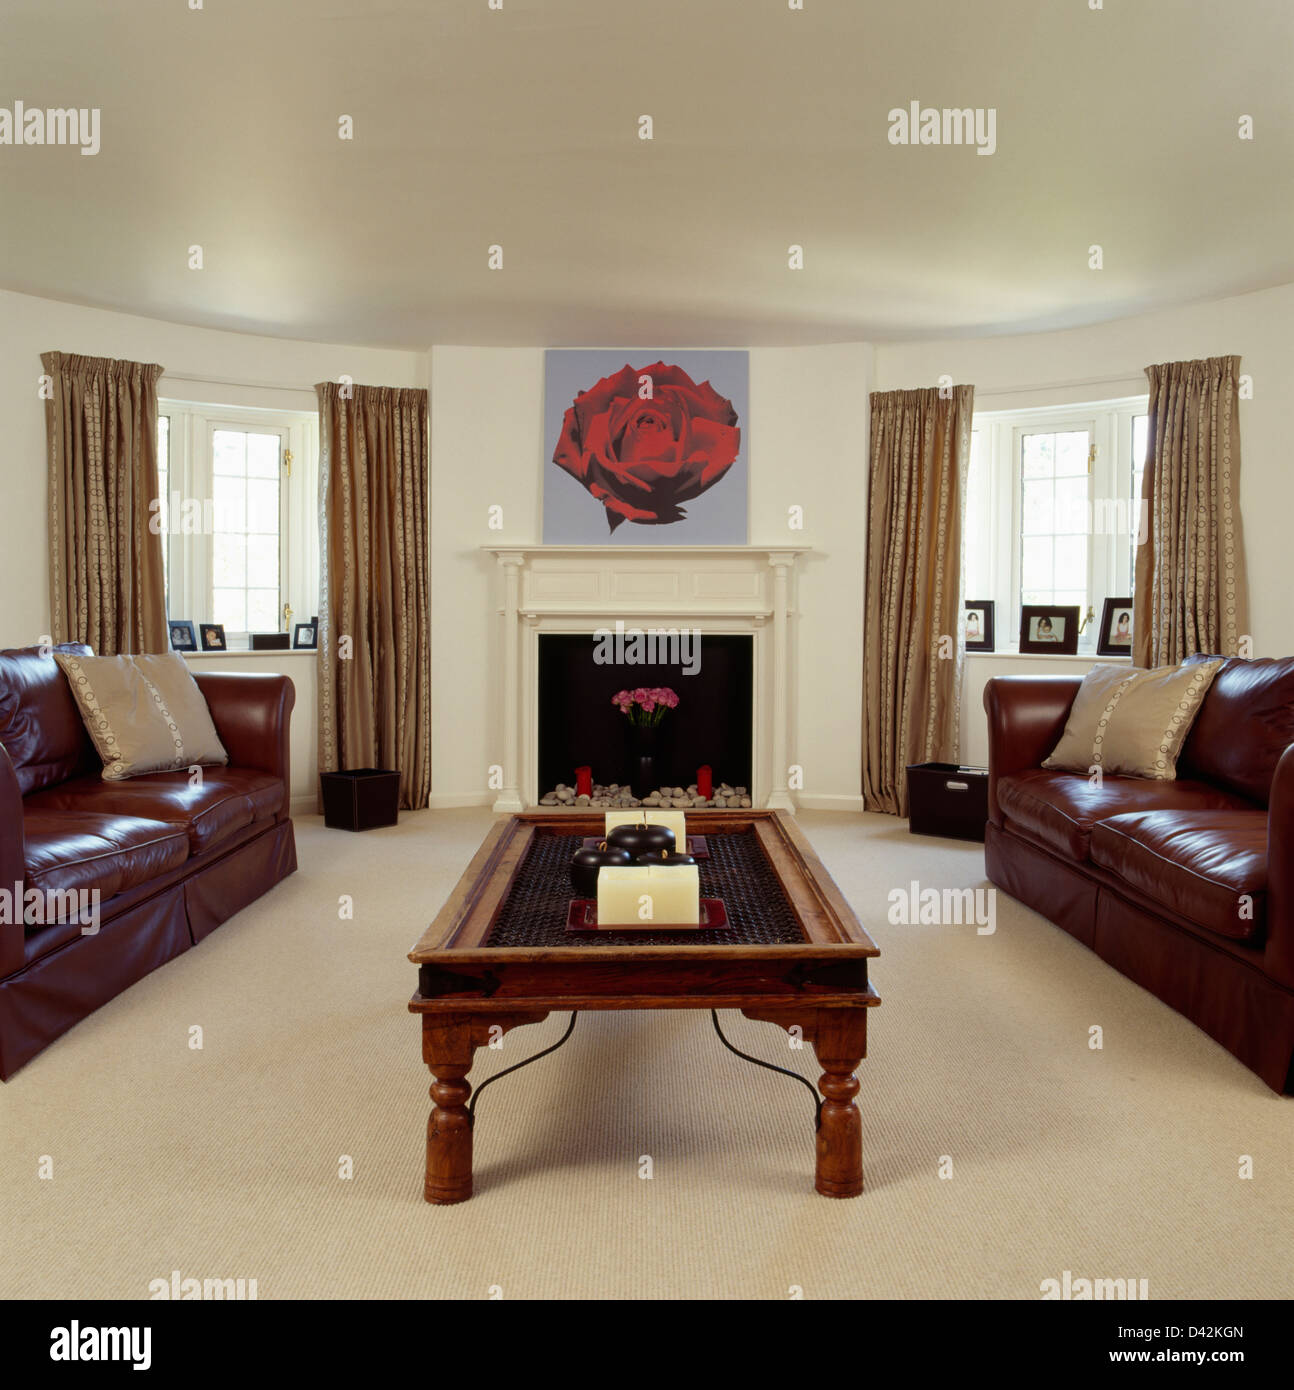 Carpet In Living Room. Brown leather sofa and Indonesian wood coffee table in living room with  cream carpet picture of red rose above fireplace